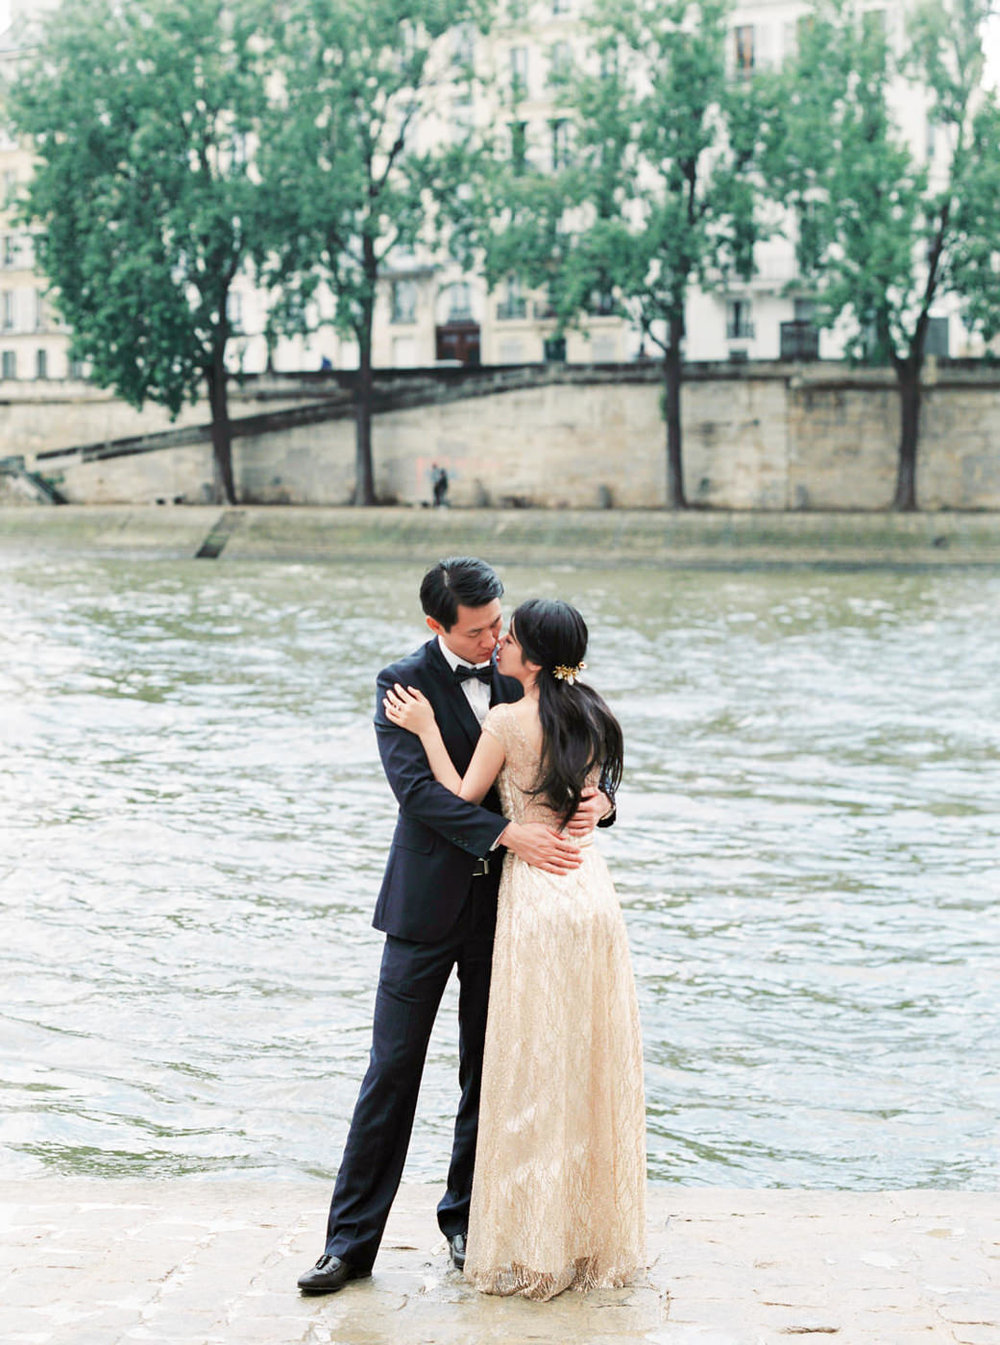 Paris_Wedding_Photographer_de_Seine_Elopment_Photoshoot_Engageme